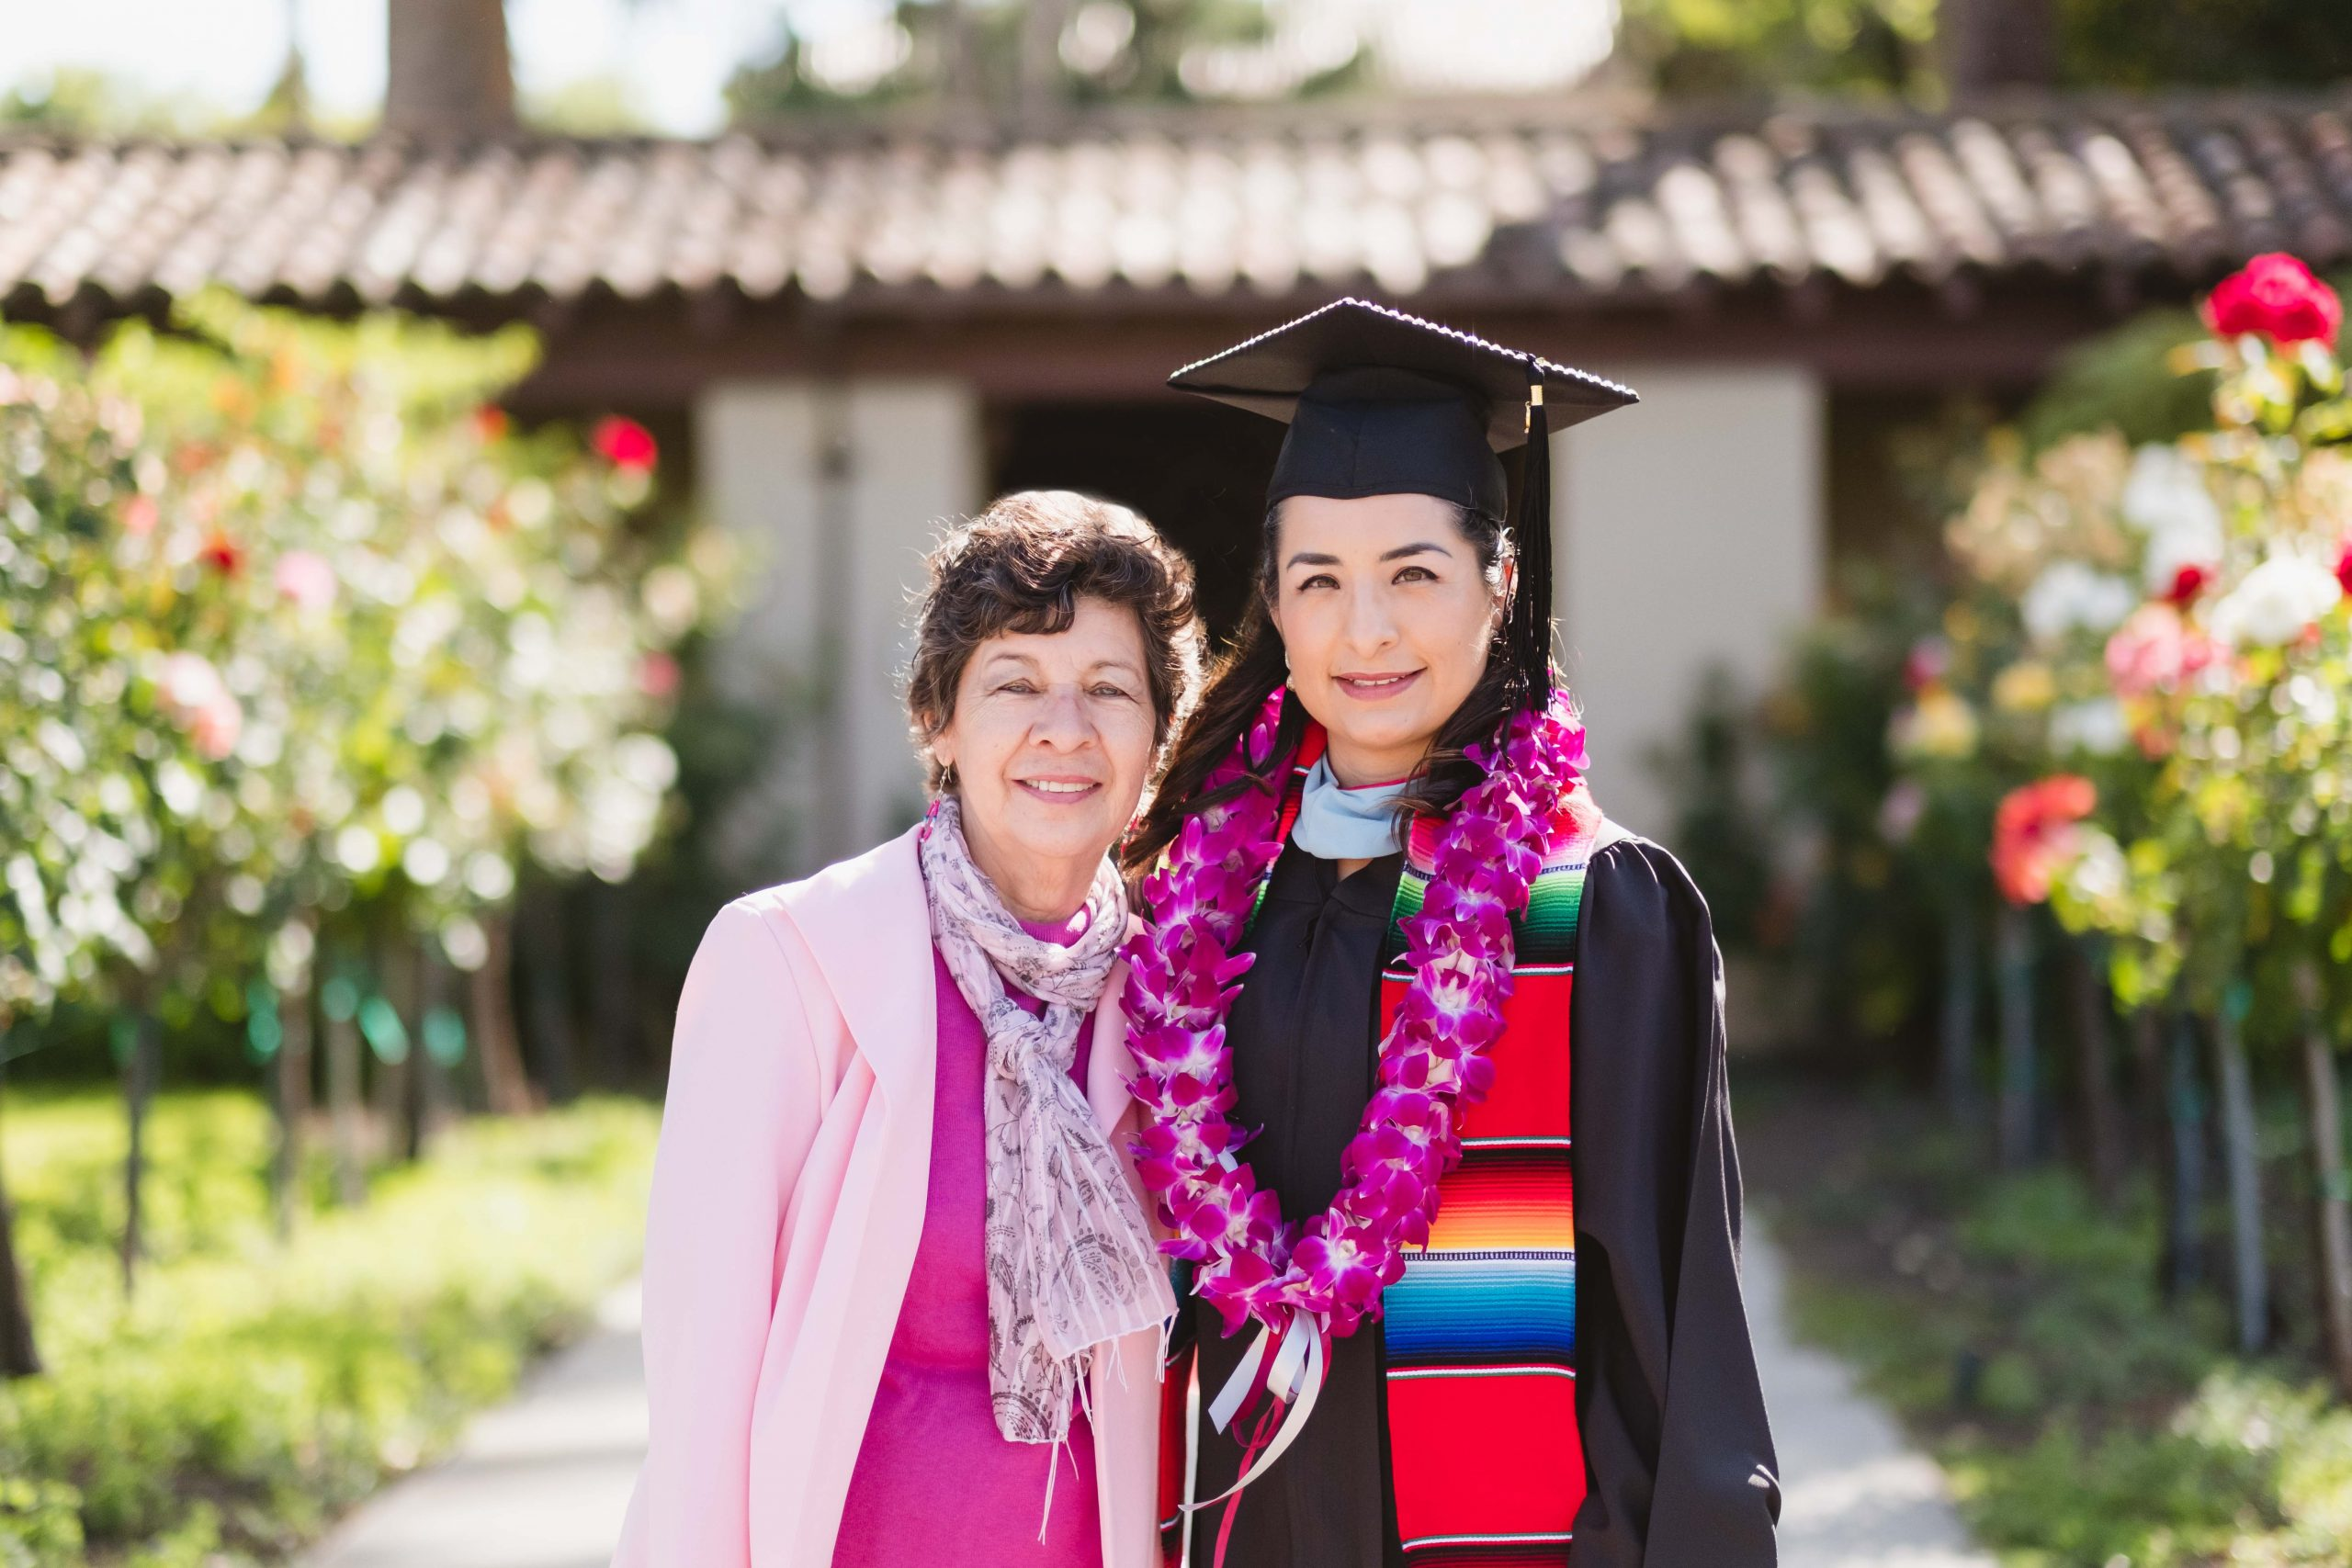 Mother and Daughter graduation portrait